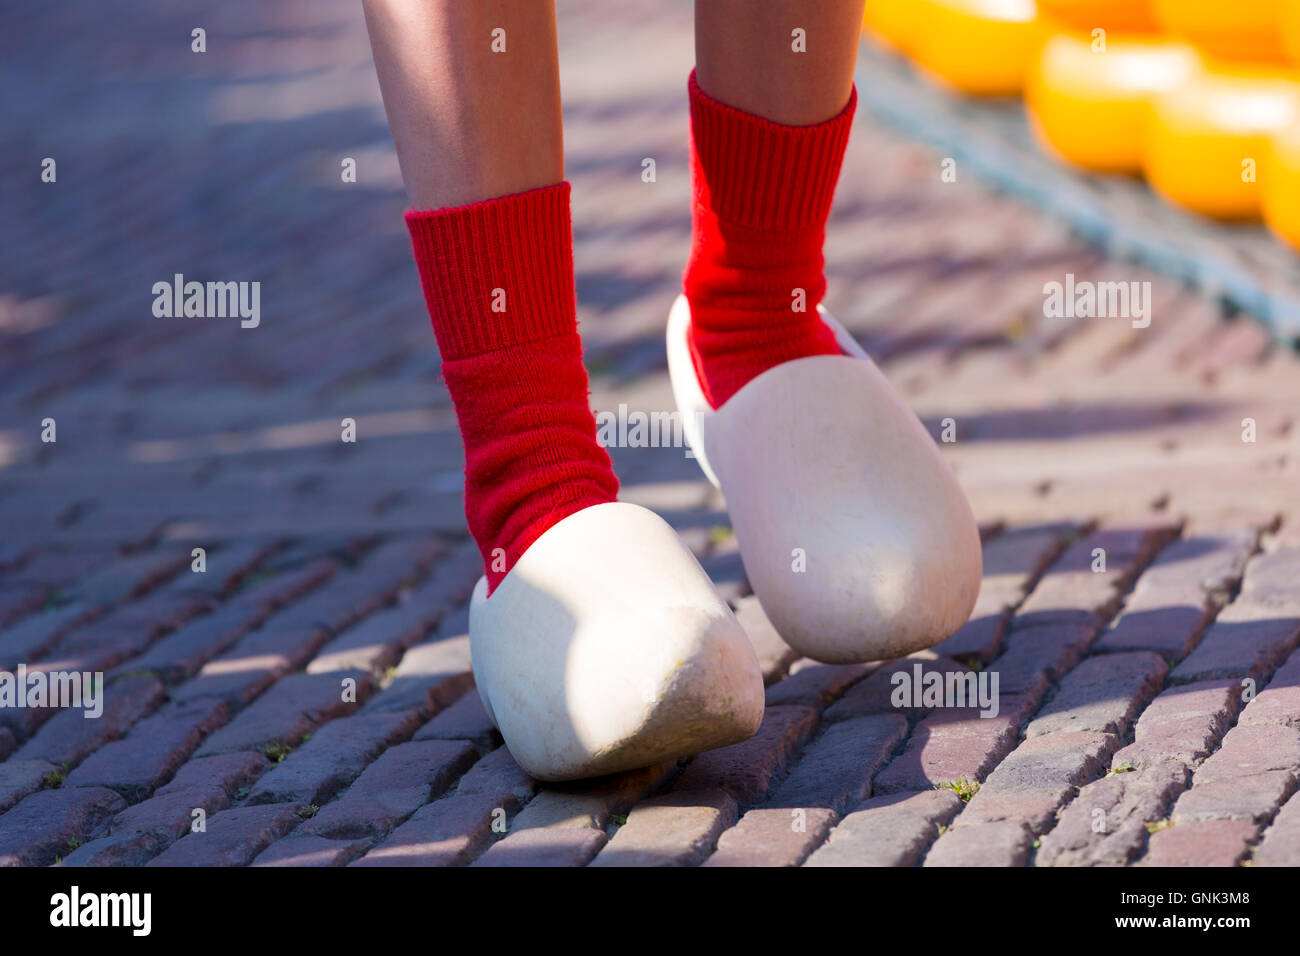 Dutch clogs traditional shoes and socks worn by woman Kaasmeisje, Alkmaar cheese market, The Netherlands - Stock Image